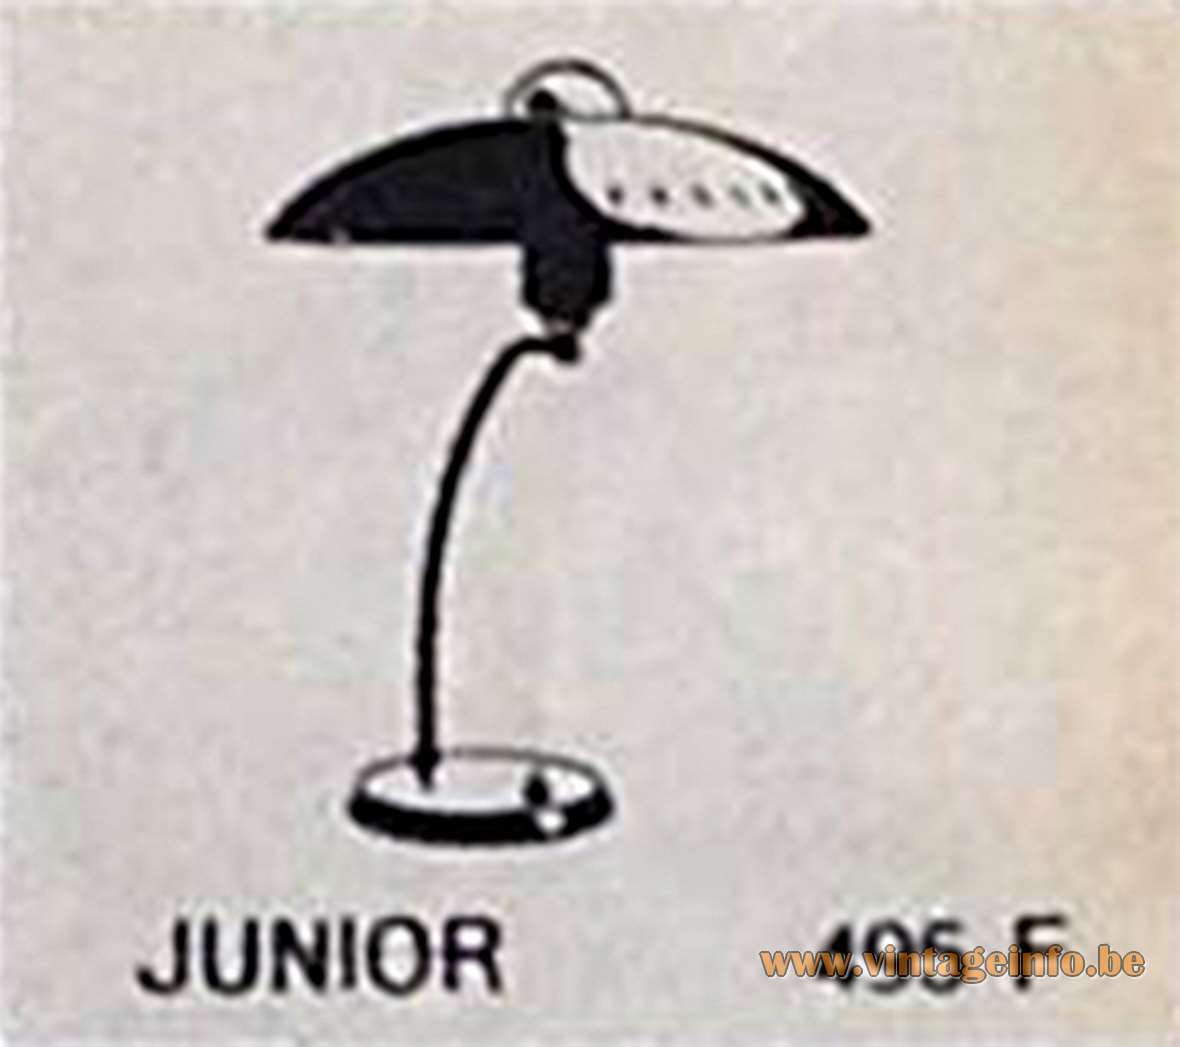 Philips Junior Desk Lamp - publicity